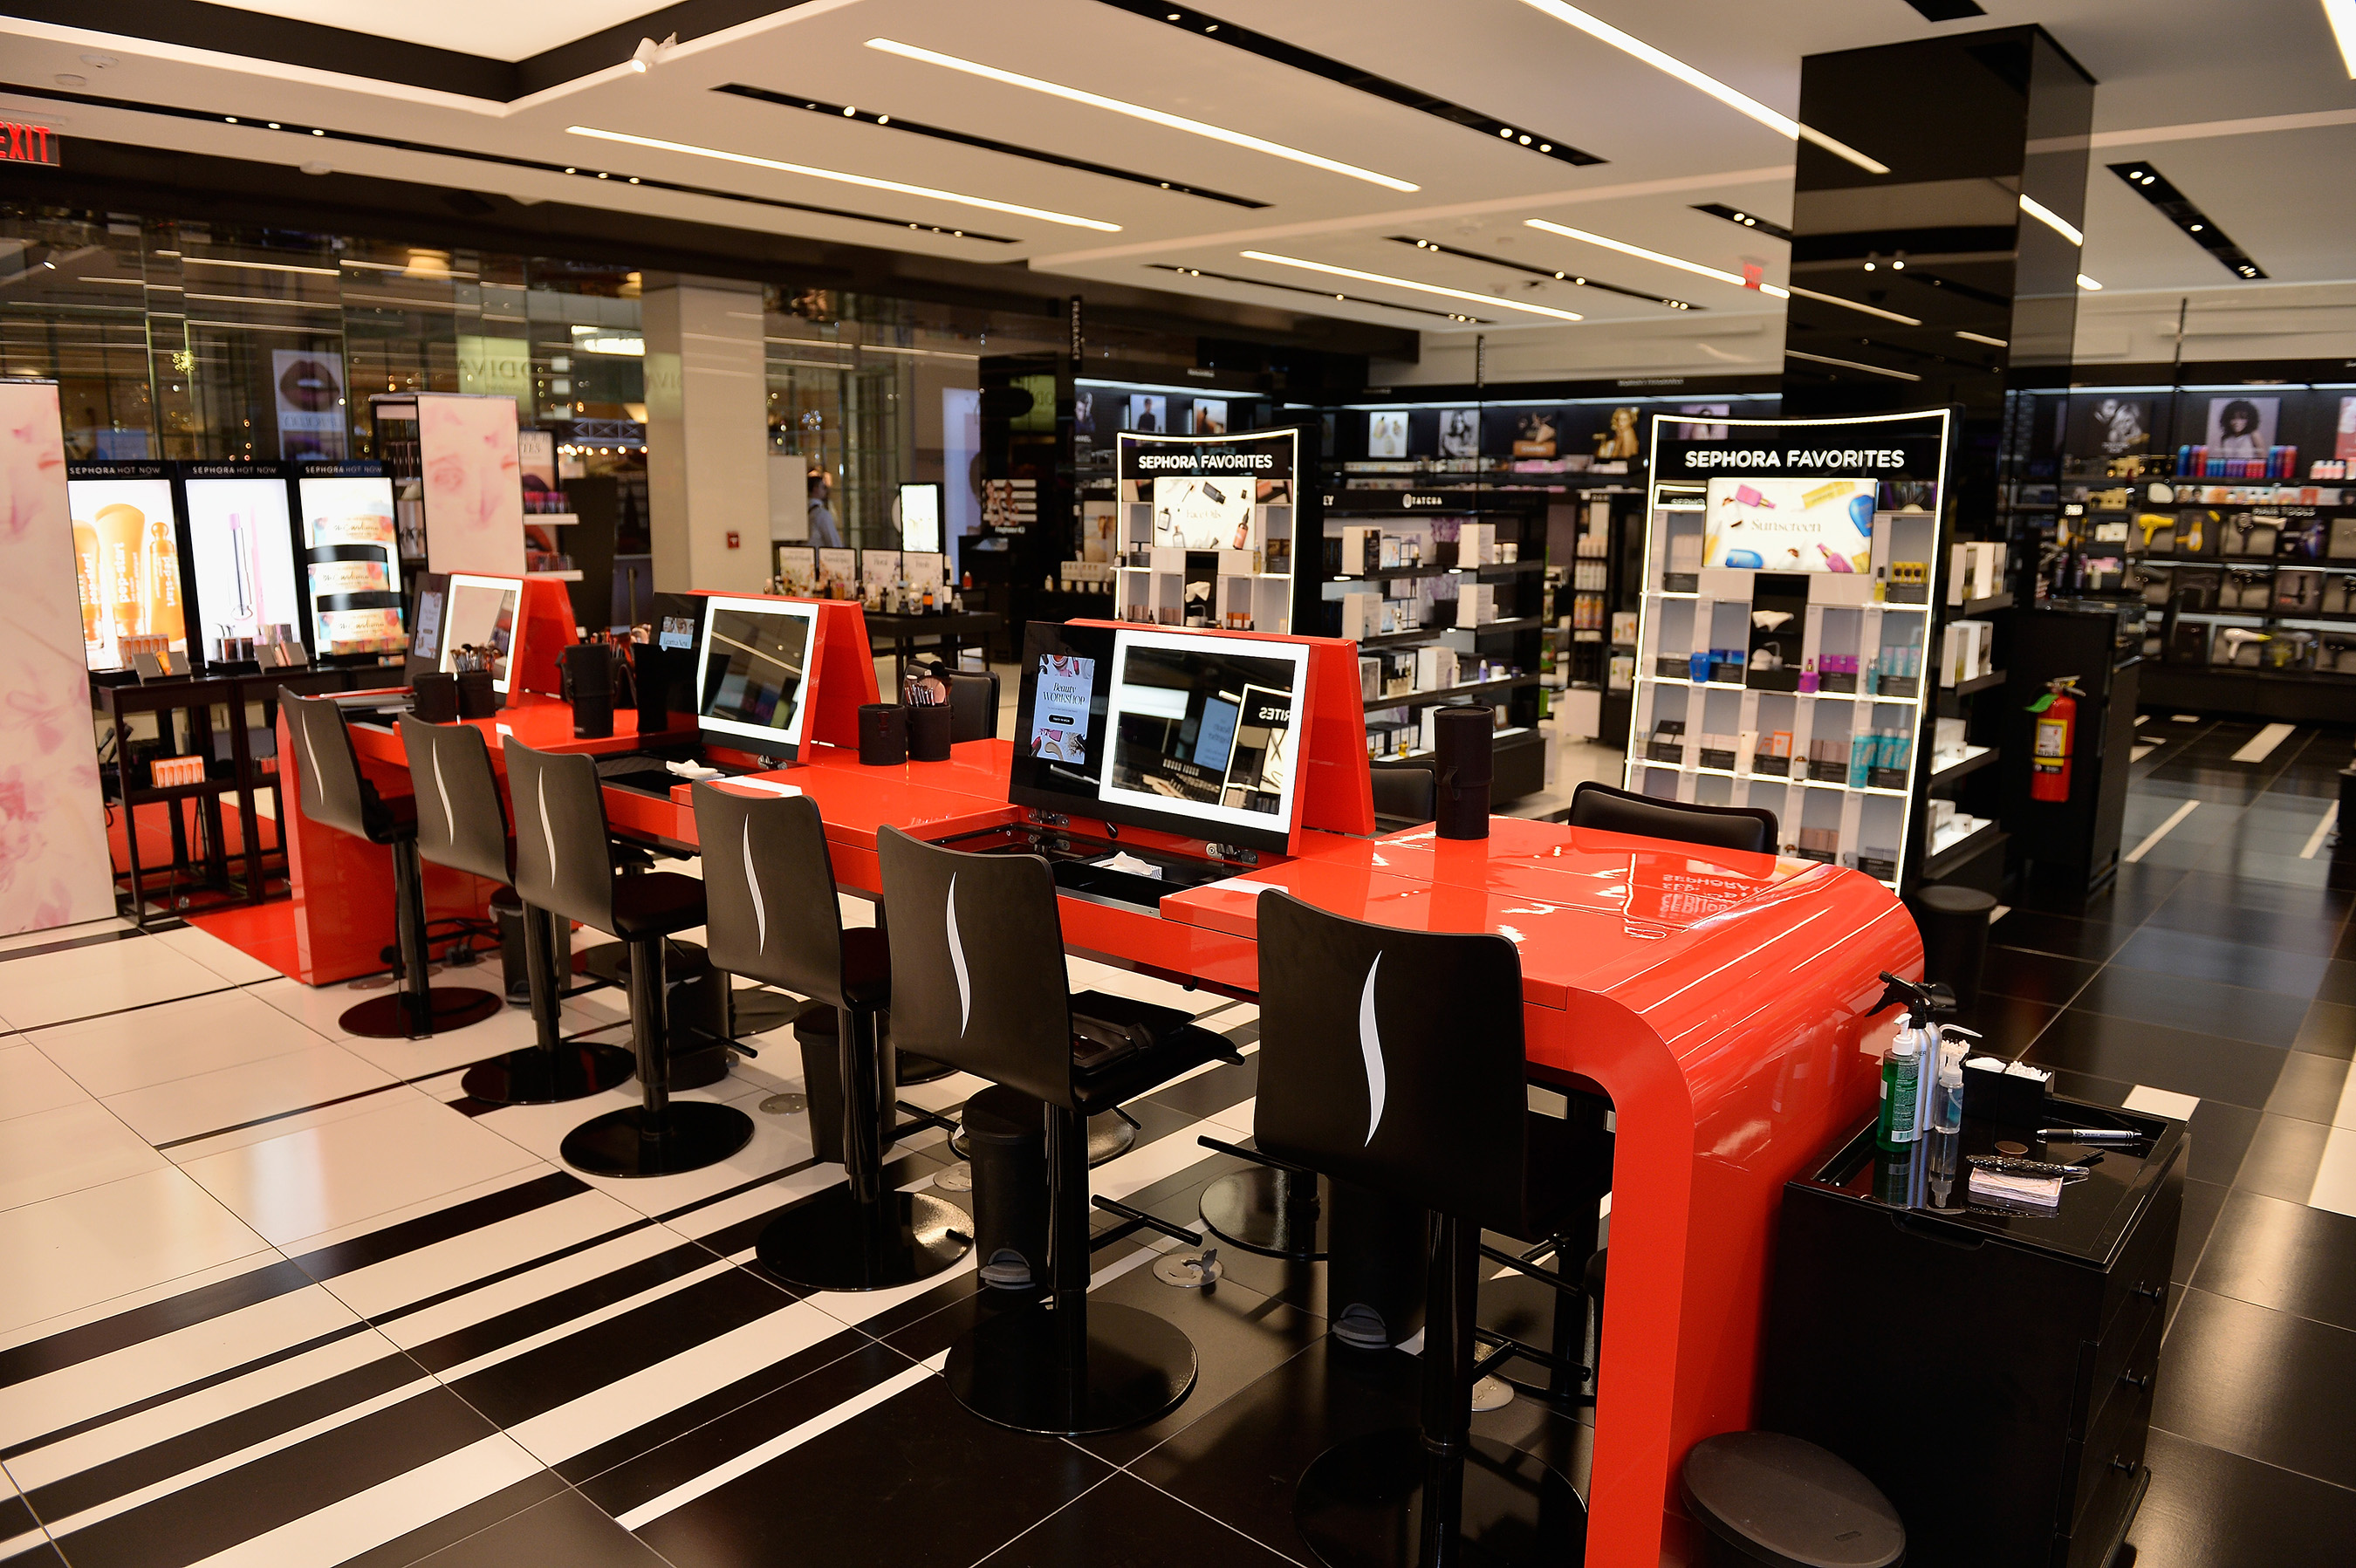 Sephora Opens Its 400th Store And Brings Its Teach, Inspire And Play Approach To Chicago's Michigan Avenue